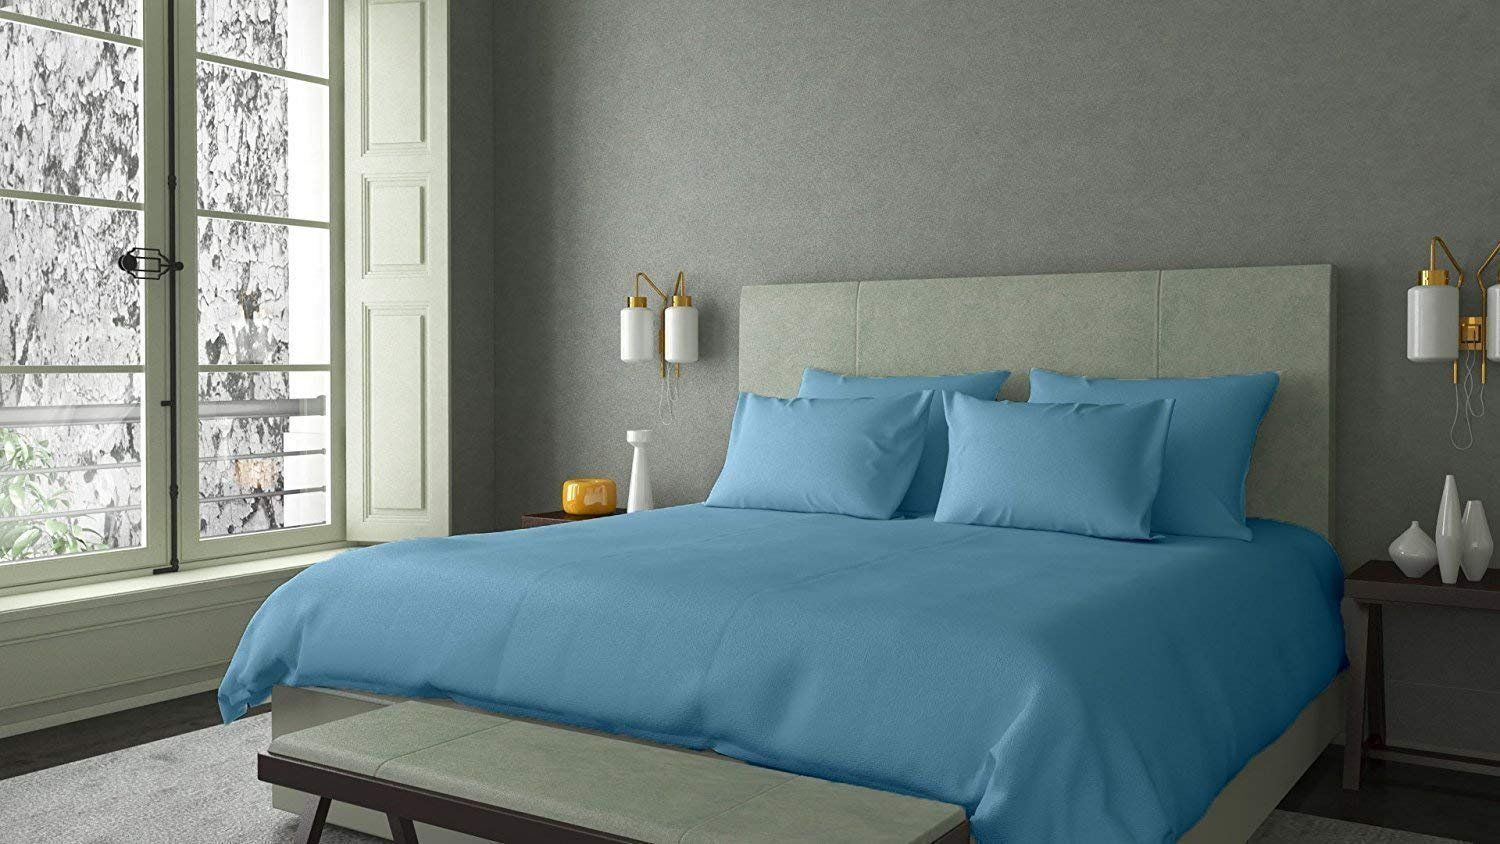 Heavy Fabric 1500 Thread Count 4piece Bed Sheet Set Egyptian Cotton Fits 1012 Inch Deep Pocket Solid Pattern Cal Bed Sheet Sets Blue Sheet Sets White Sheet Set